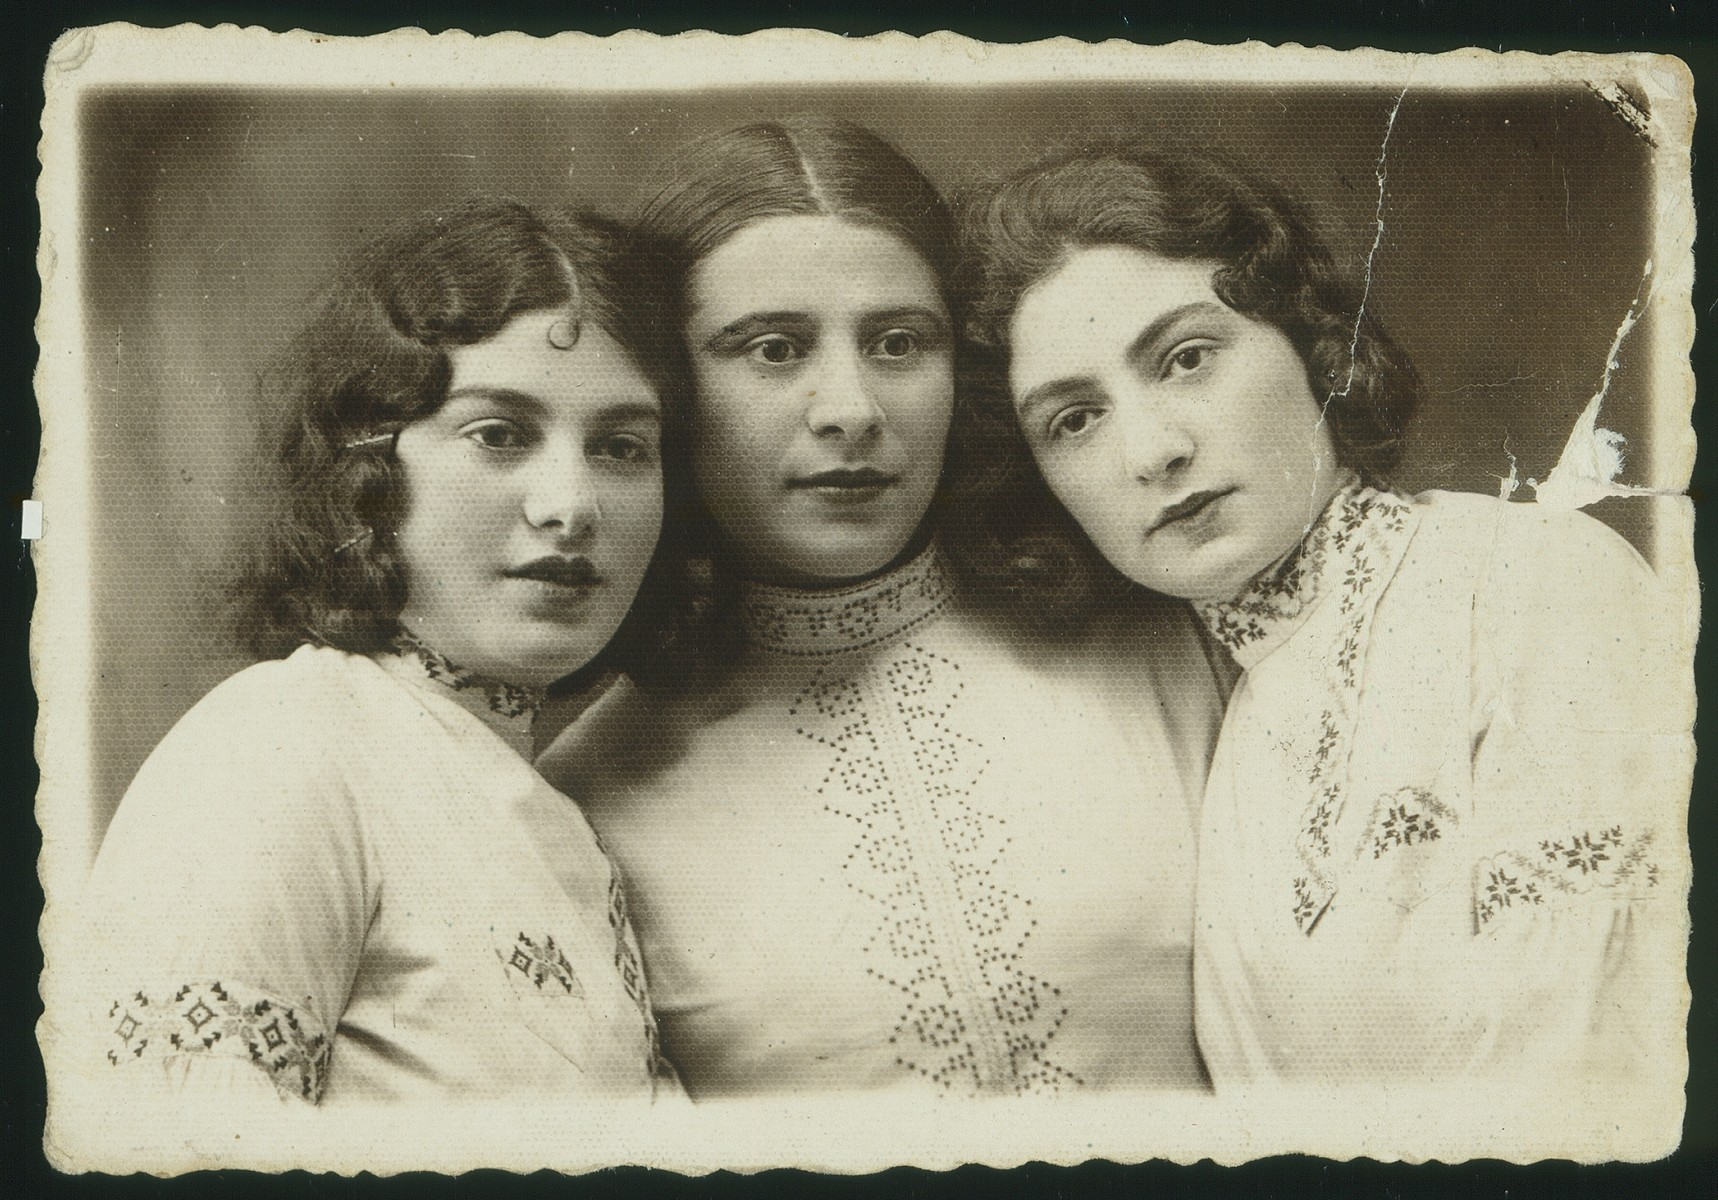 Portrait of three young women wearing embroidered shirts.   From right to left: Batia Lubetski, Hayya Gruznik Dworkin and Bluma Lubetski.  Batia Lubetski and Hayya Gruznik Dworkin immigrated to Palestine, and  Bluma Lubetski survived the Holocaust in Russia.